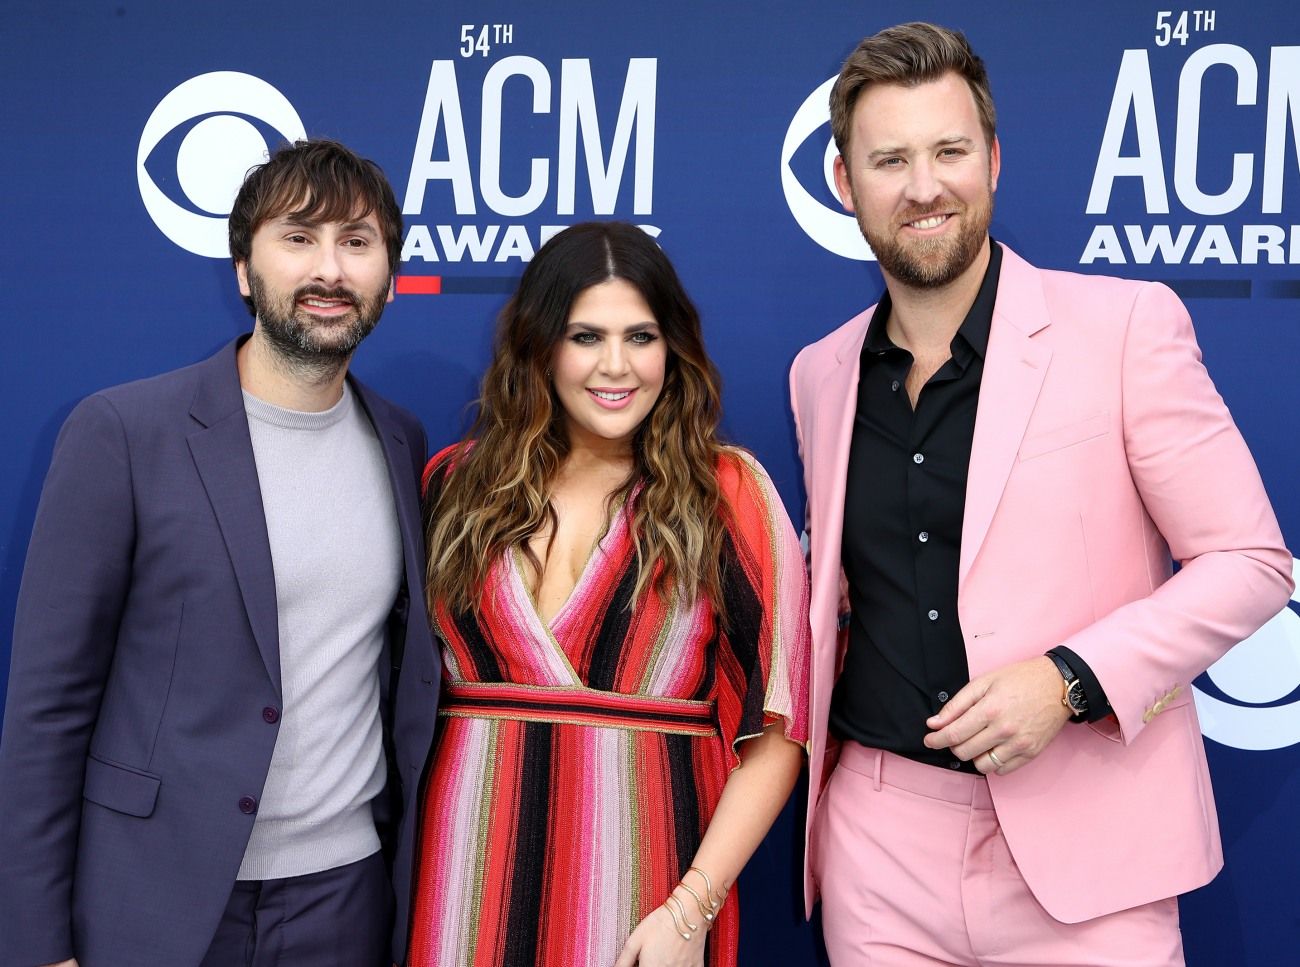 54th Annual ACM Awards Arrivals